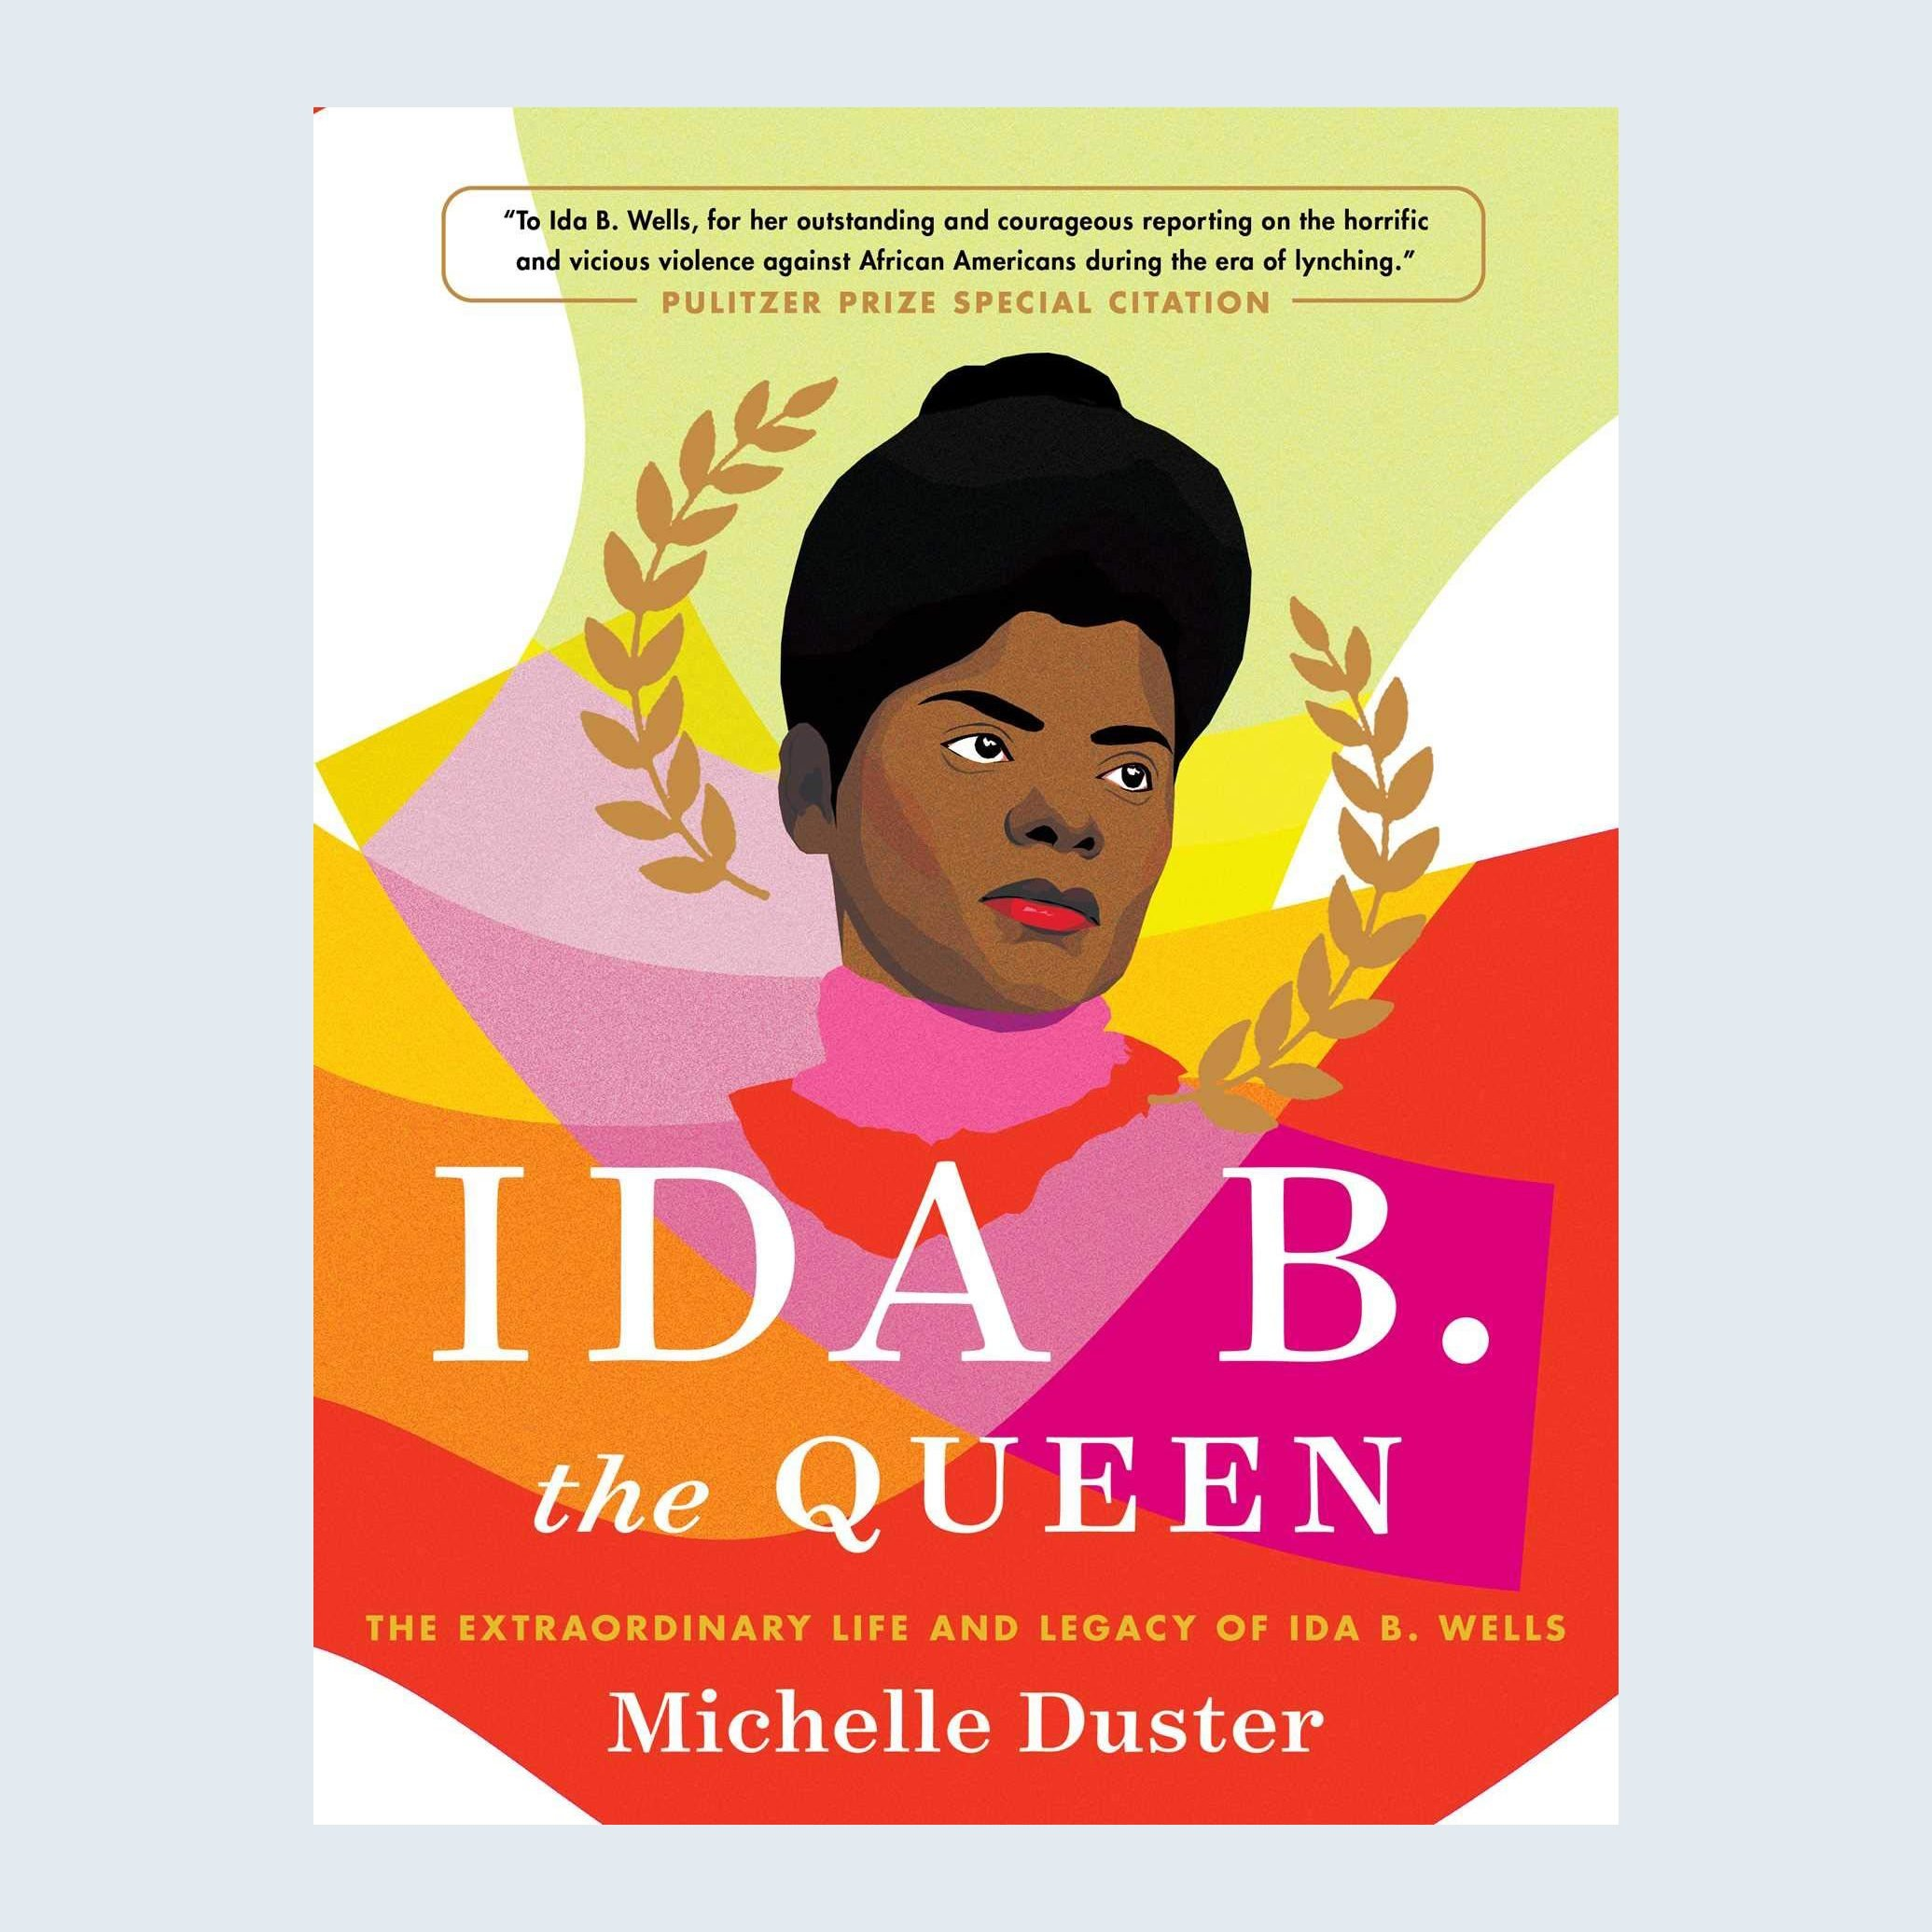 Ida B. the Queen: The Extraordinary Life and Legacy of Ida B. Wells by Michelle Duster